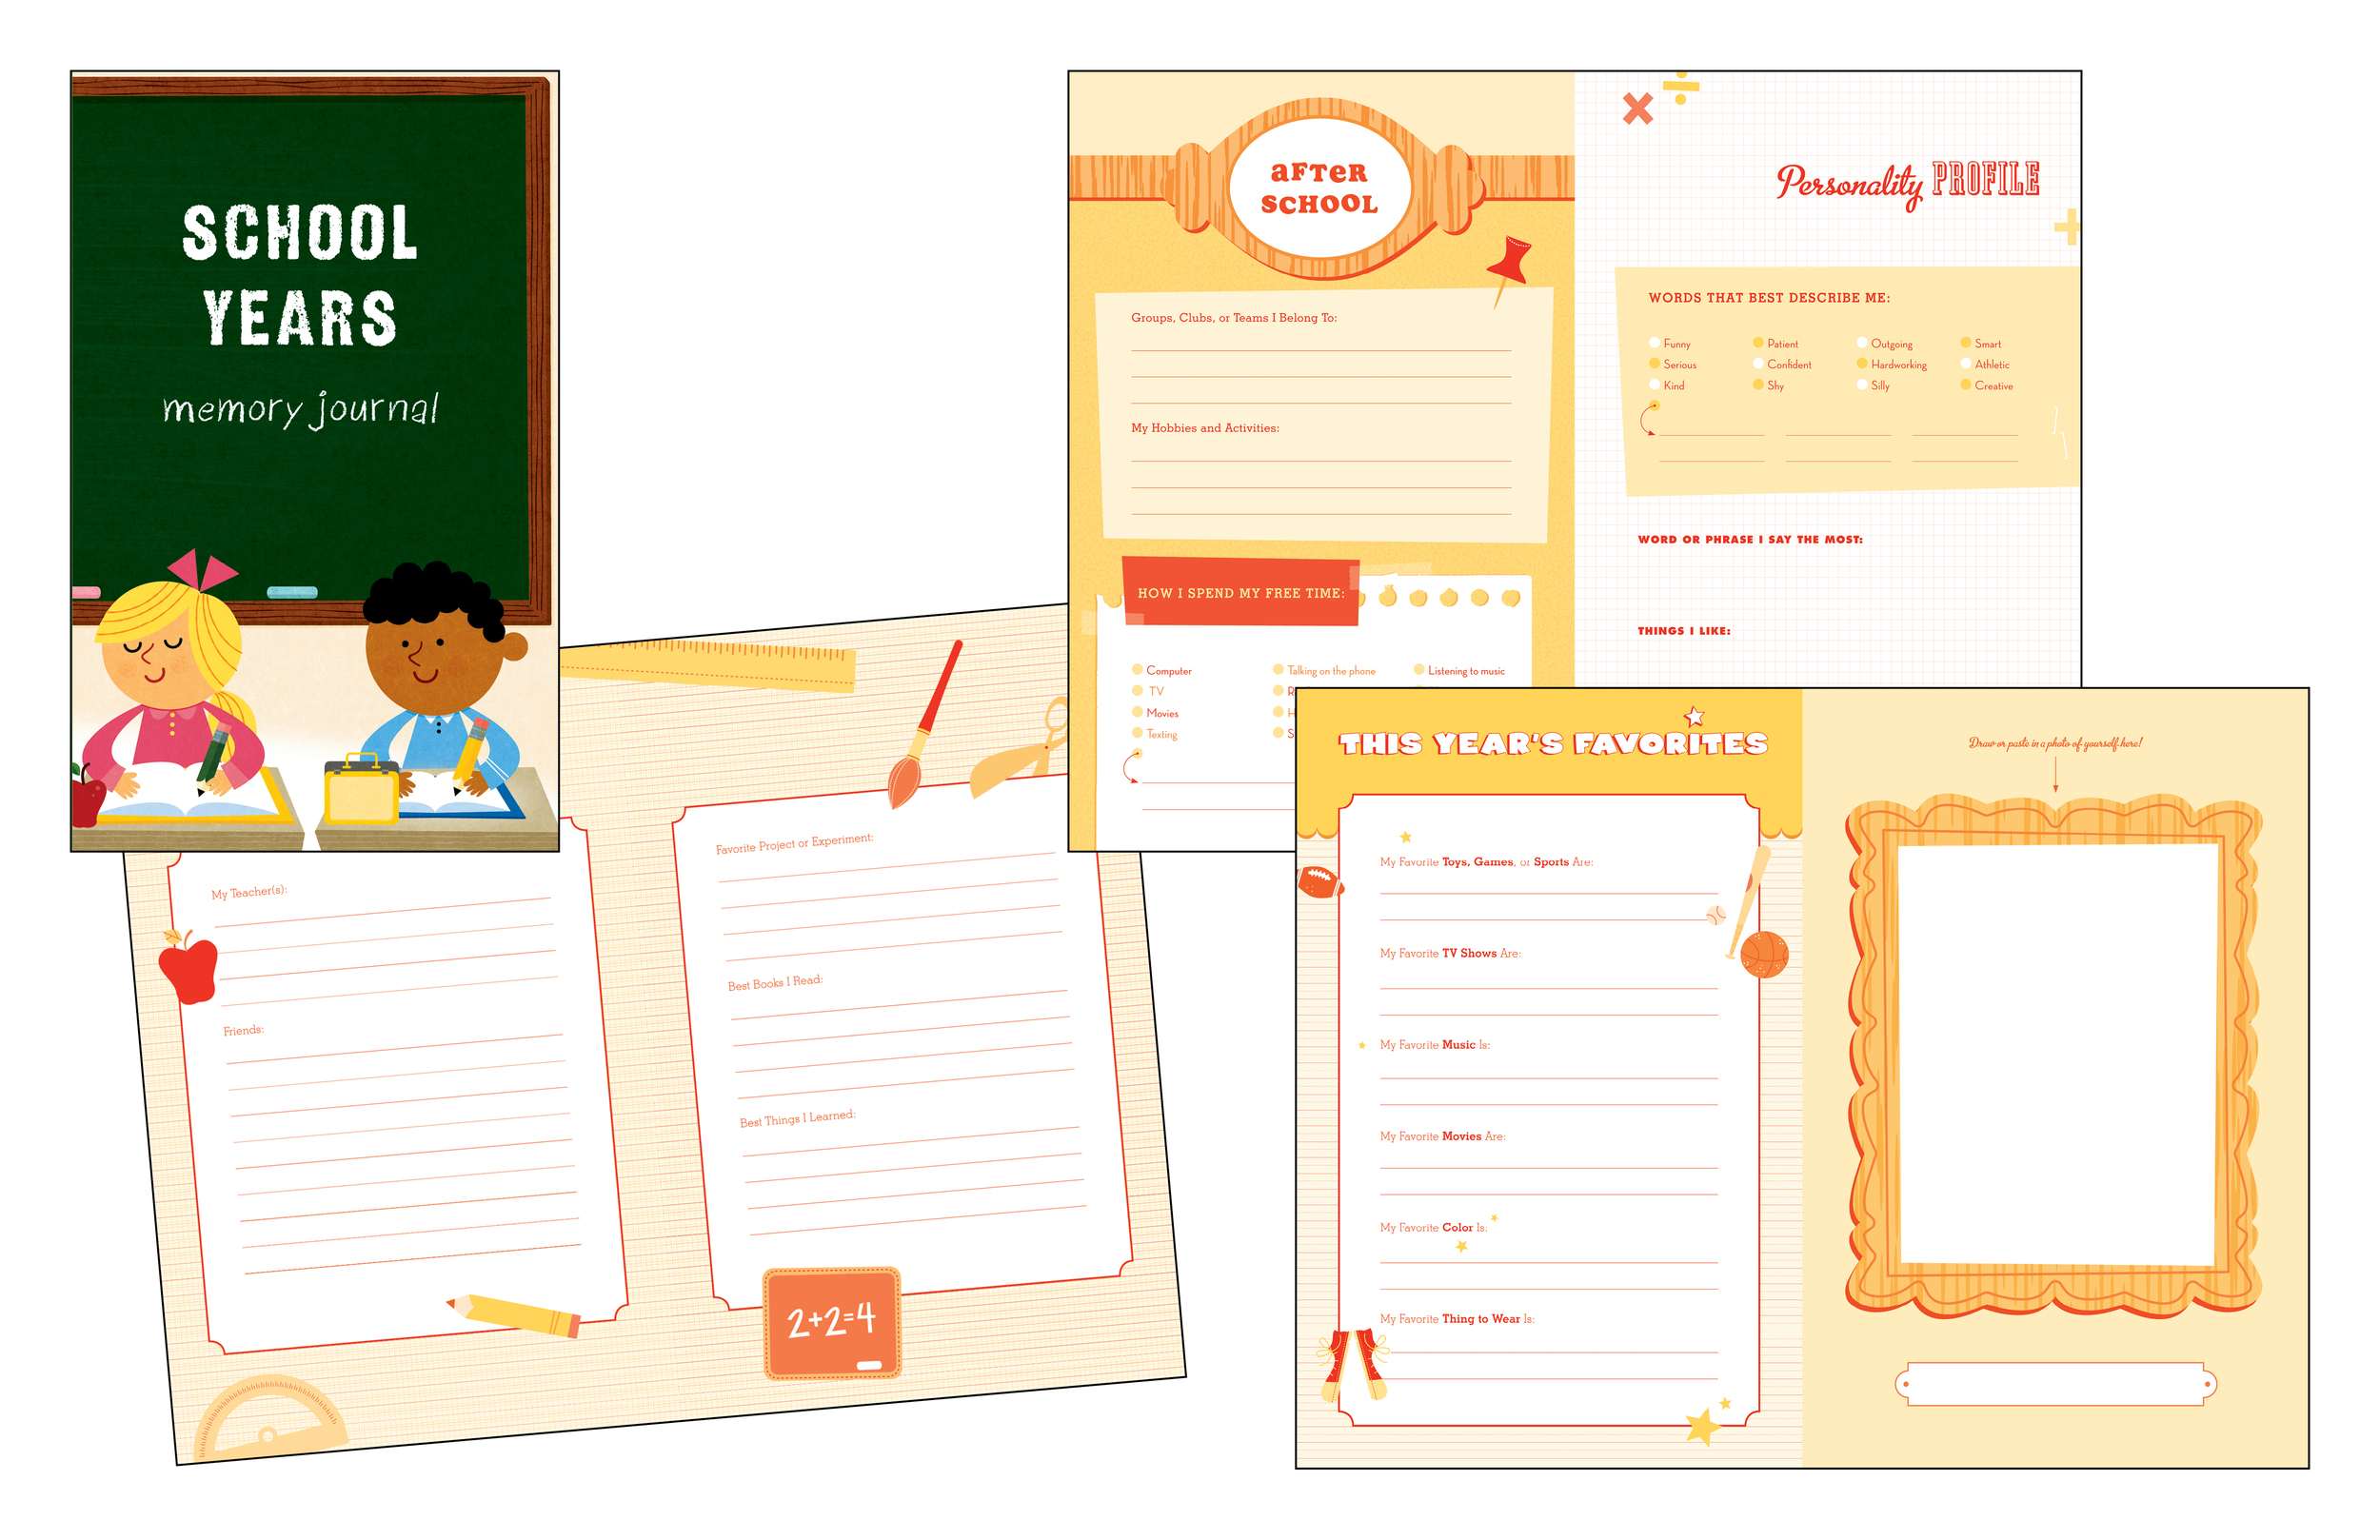 SY_booklet-layout.jpg